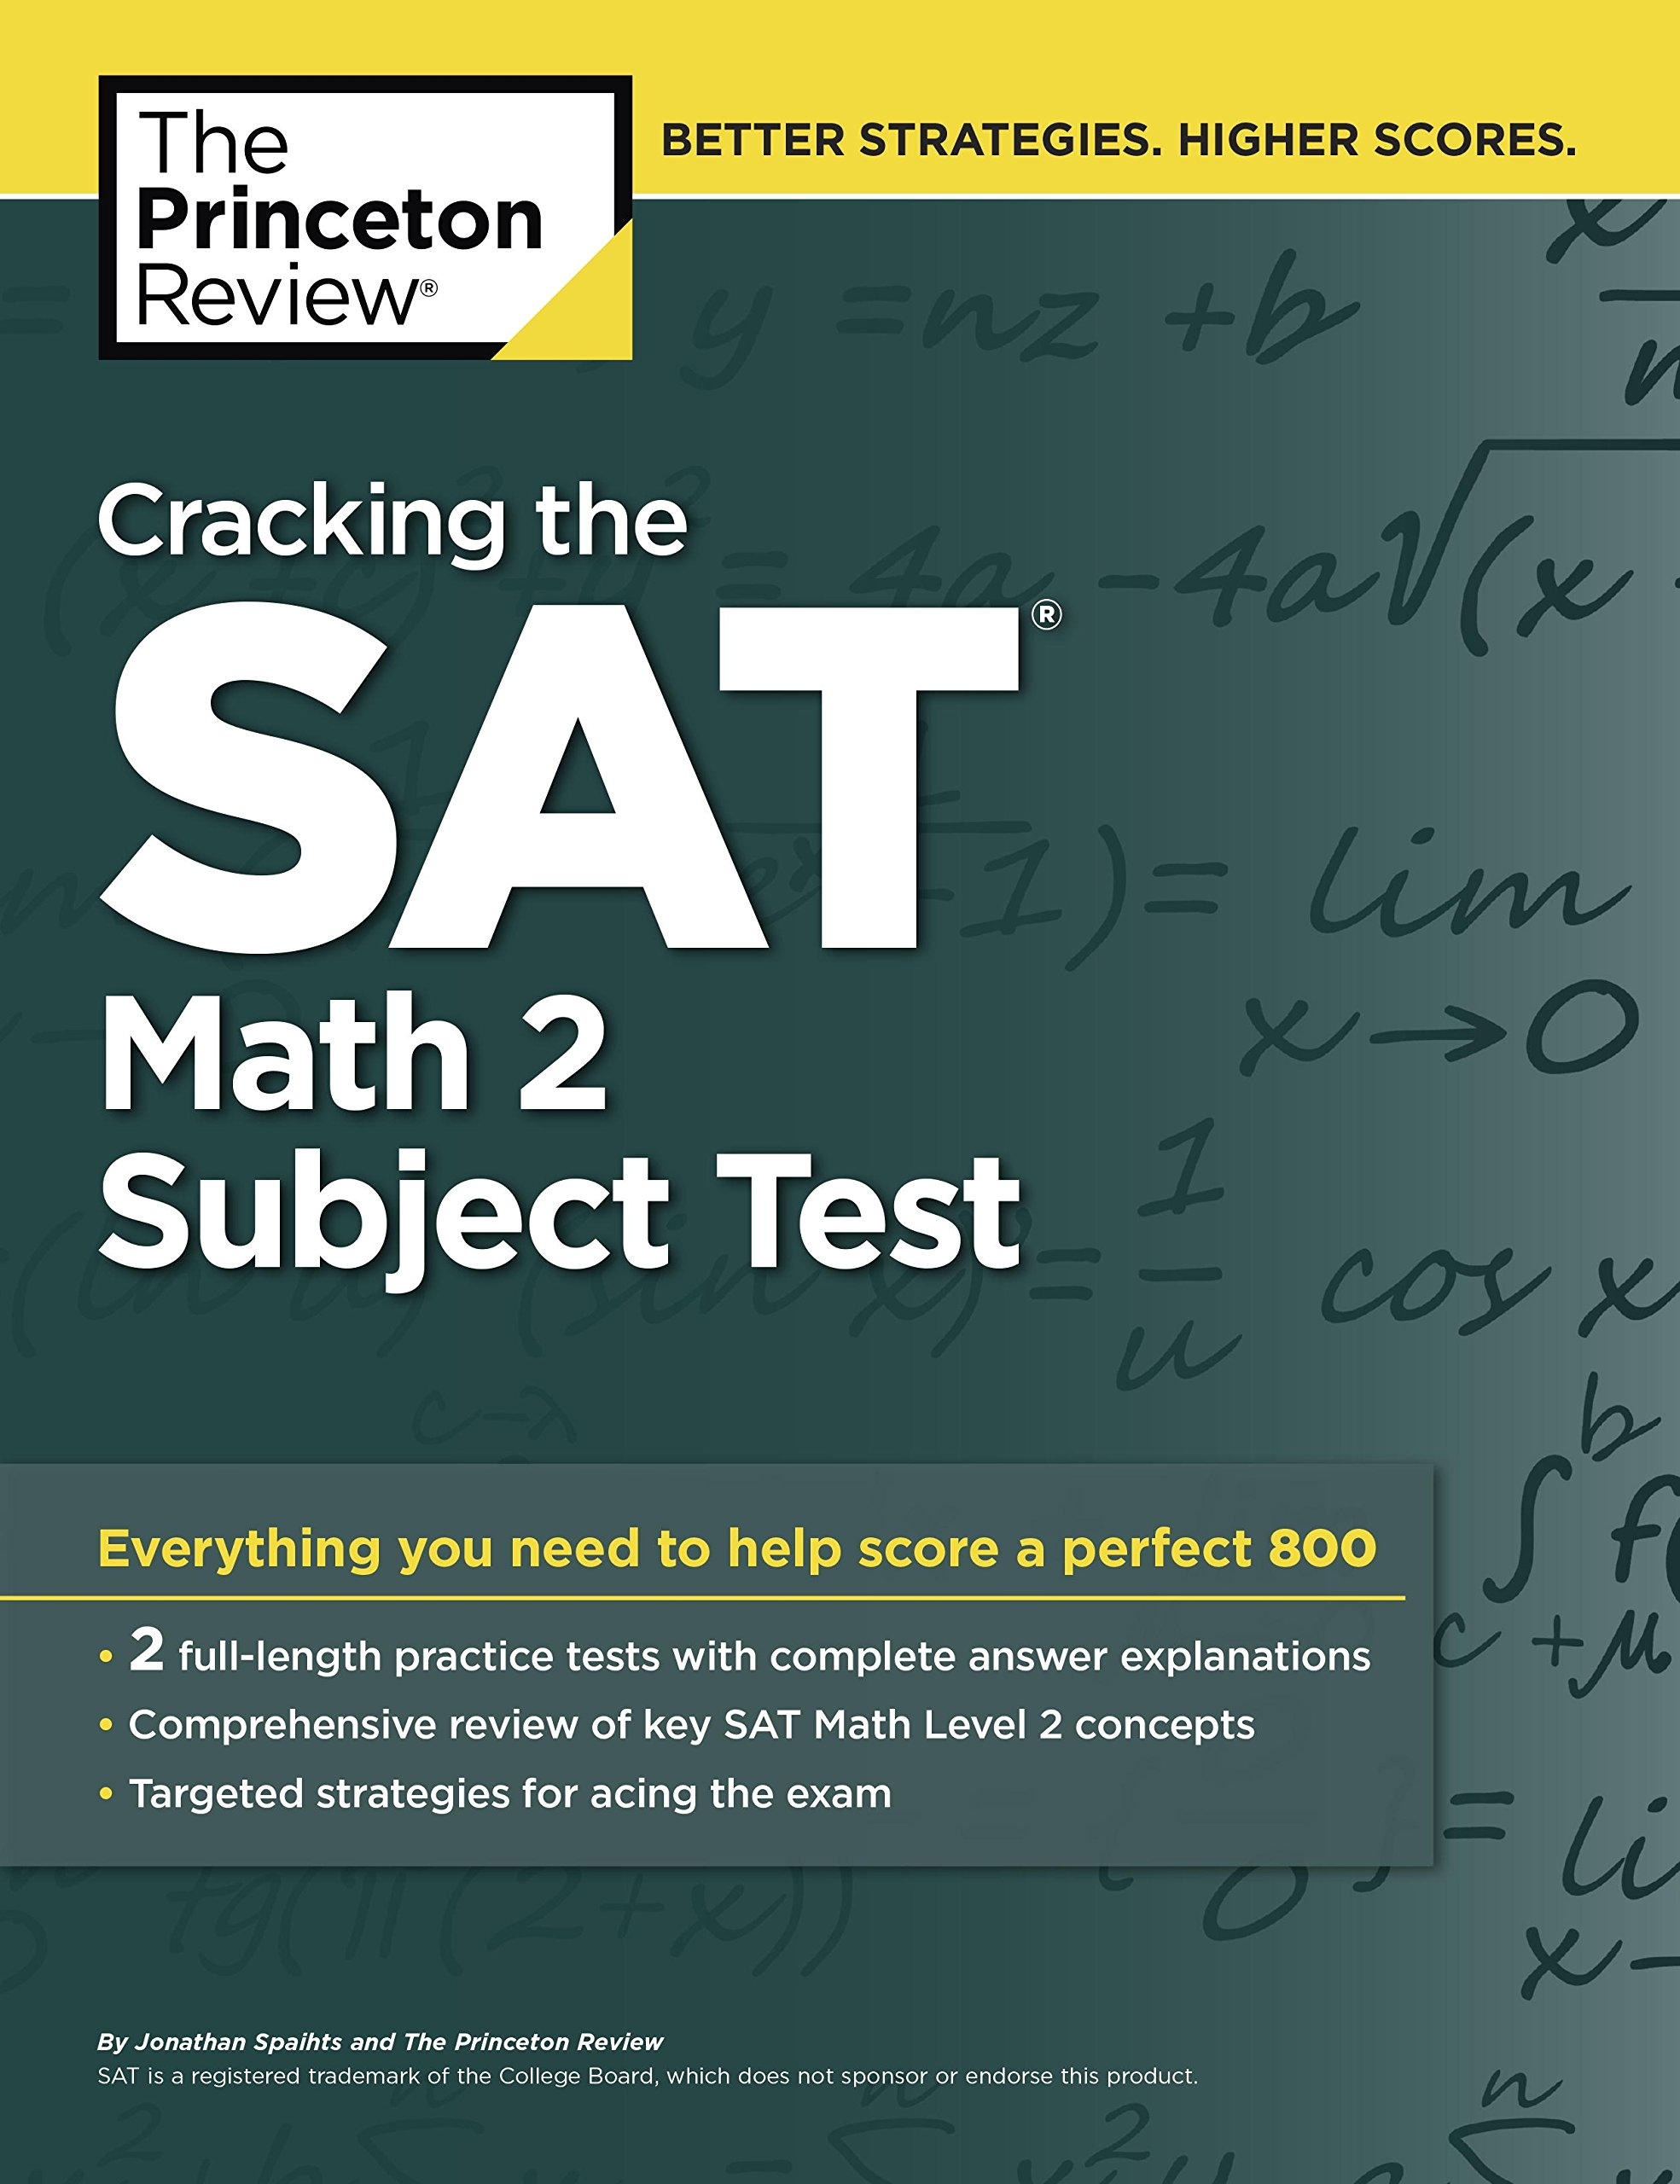 Buy Cracking the SAT Math - 2 Subject Test (College Test Preparation) Book  Online at Low Prices in India | Cracking the SAT Math - 2 Subject Test  (College ...